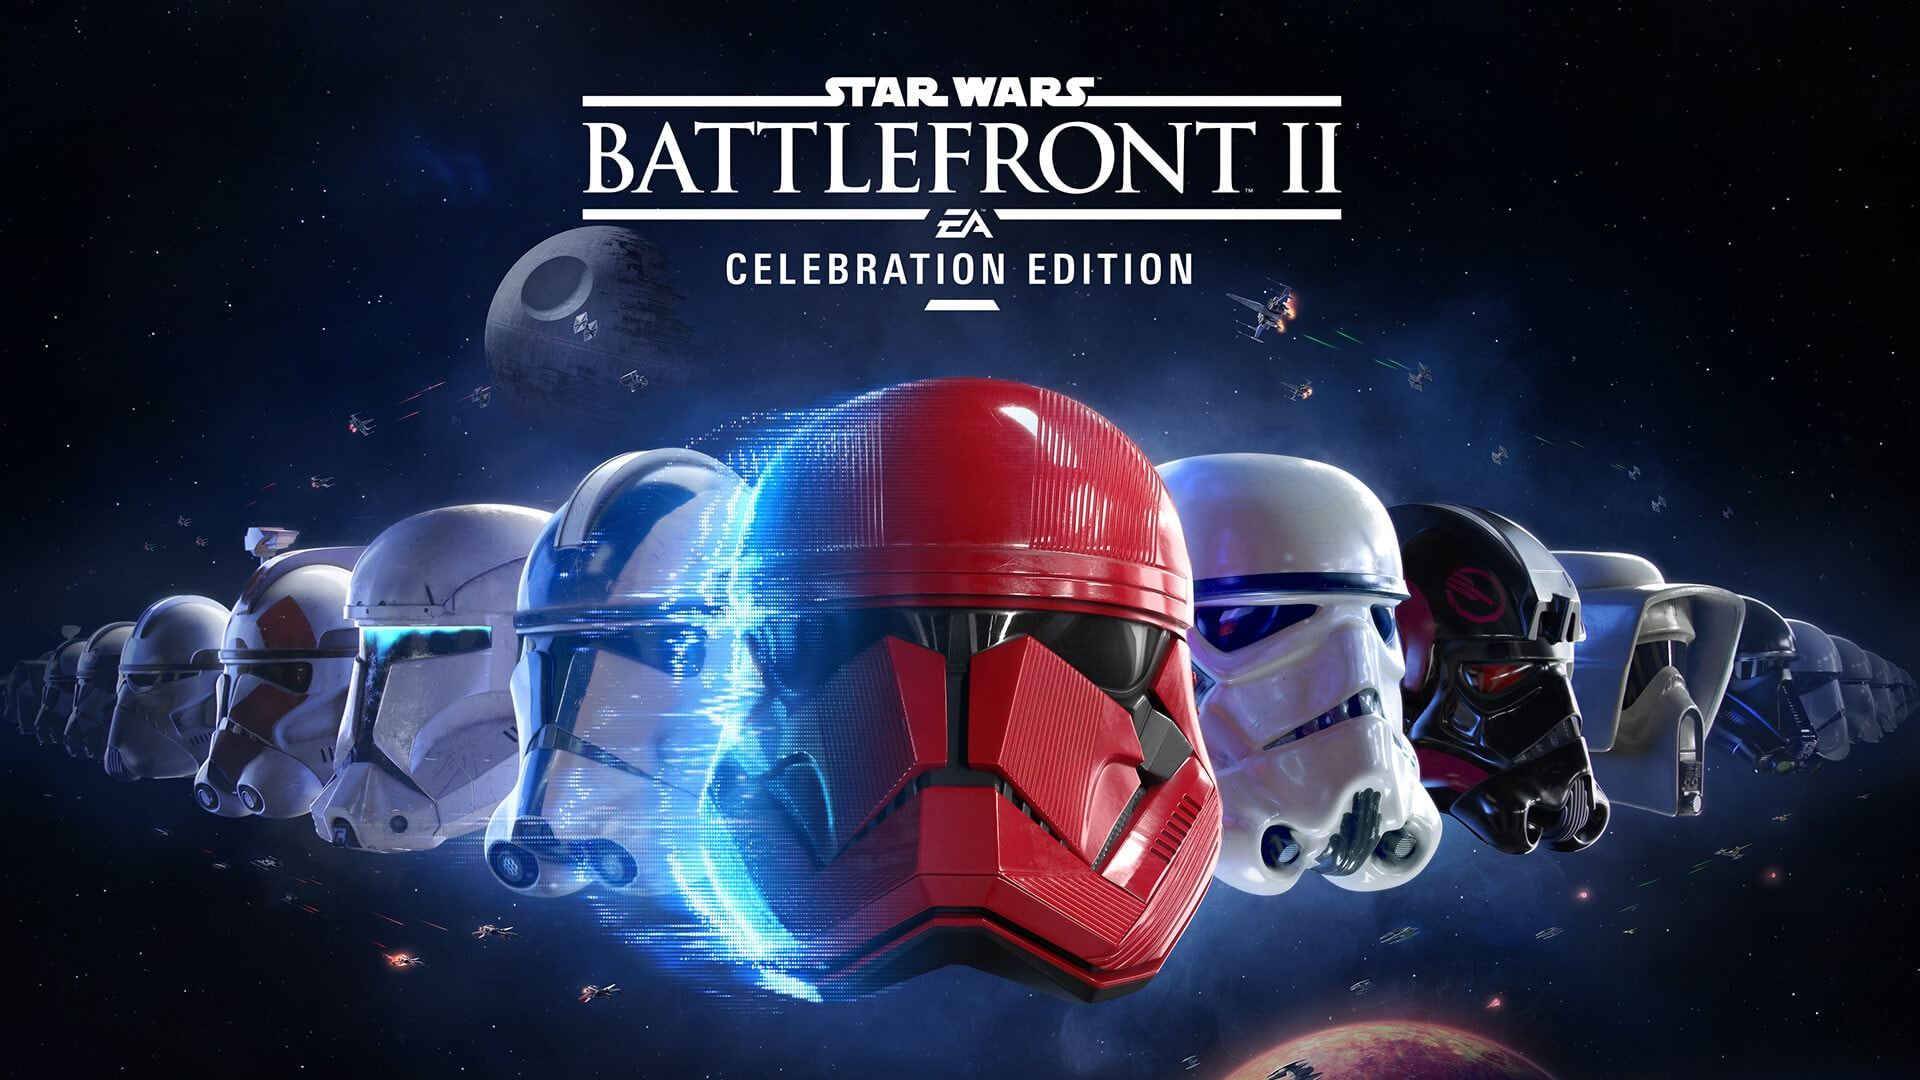 Star Wars Battlefront 2: Attack Class Loadout - Star Maps, Weapons and Tips